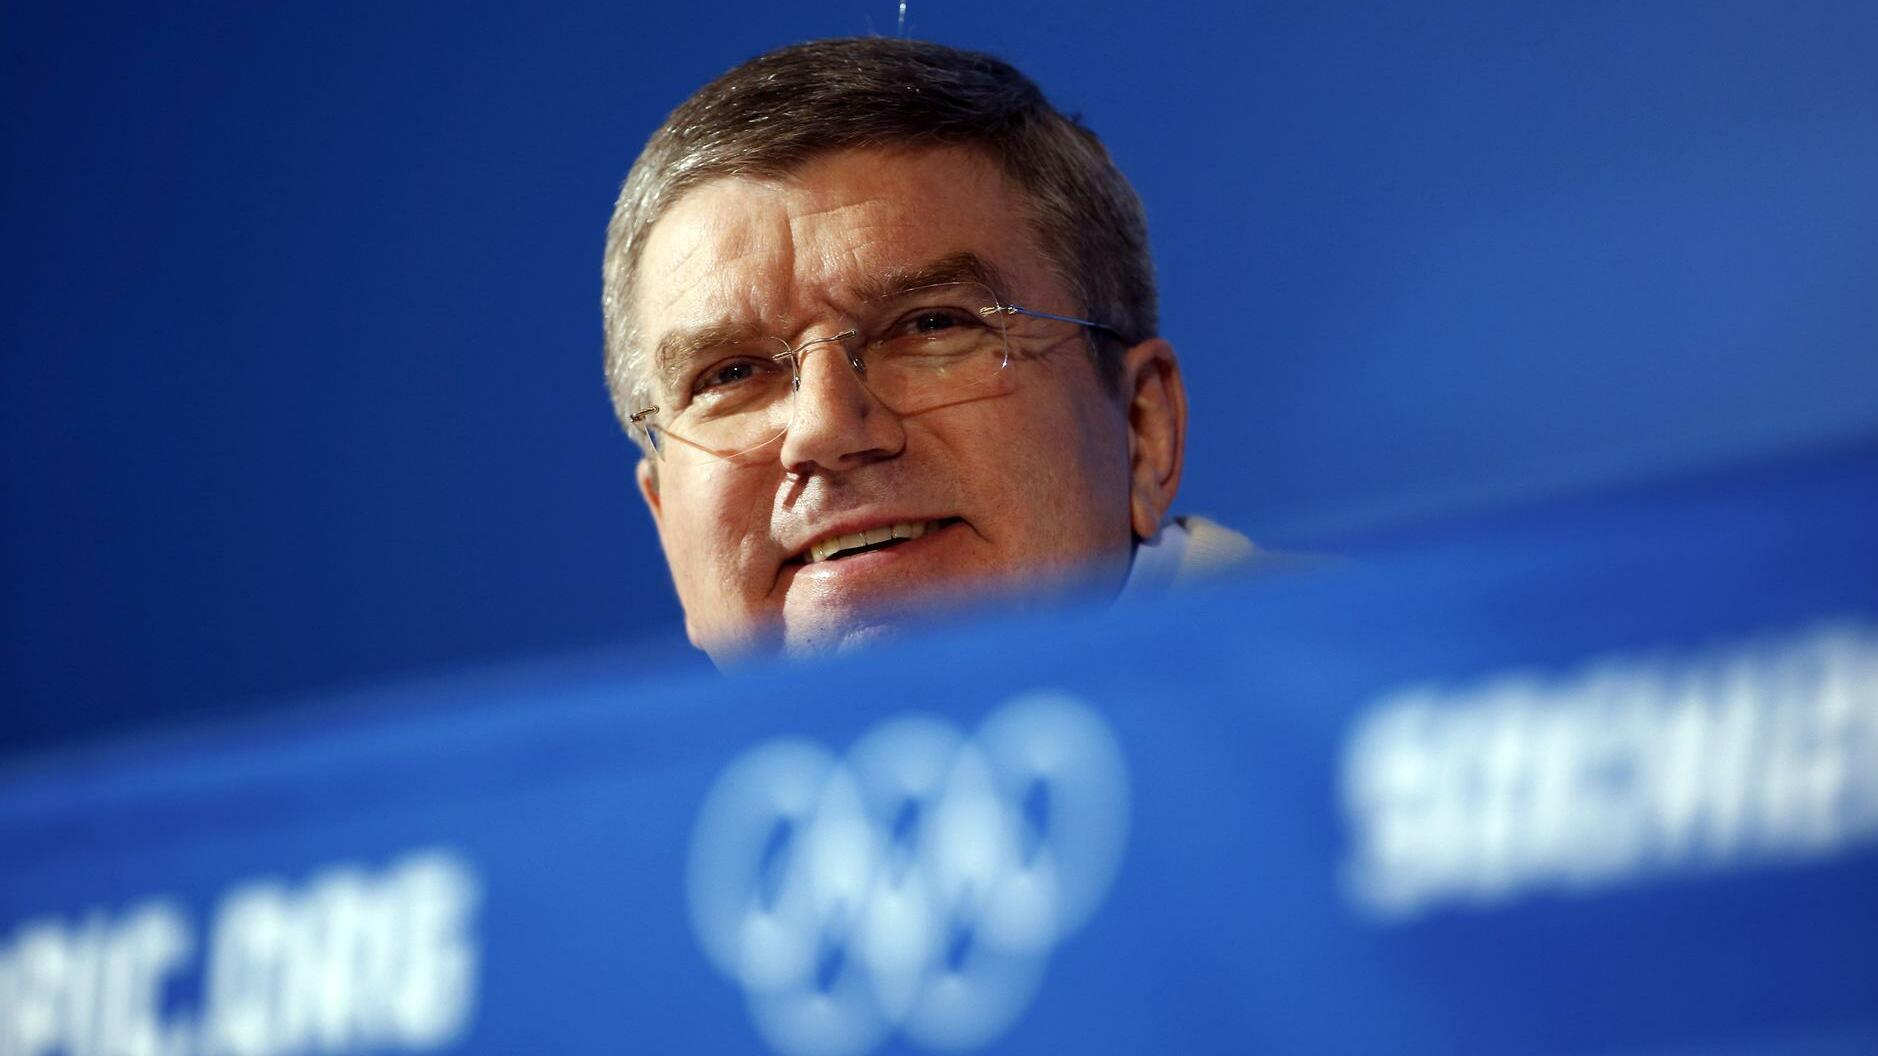 Thomas Bach Quelle: REUTERS